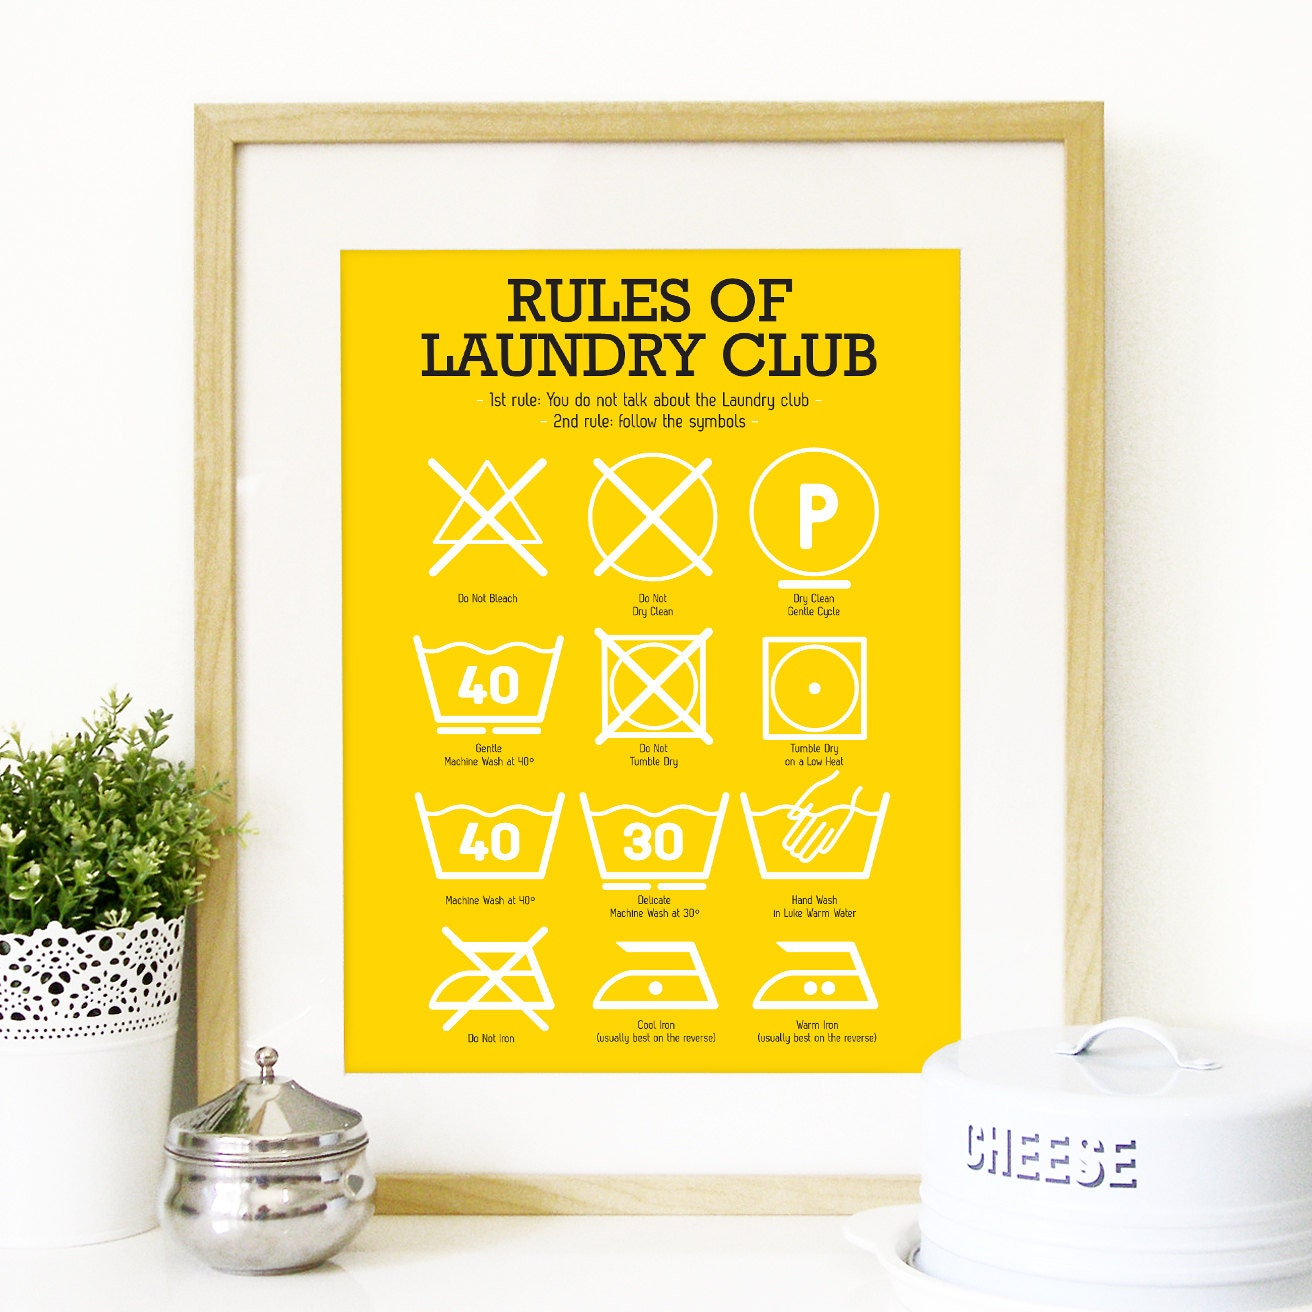 Laundry Room Posters Kitchen Laundry Club Poster Art With Laundry Symbols Explained